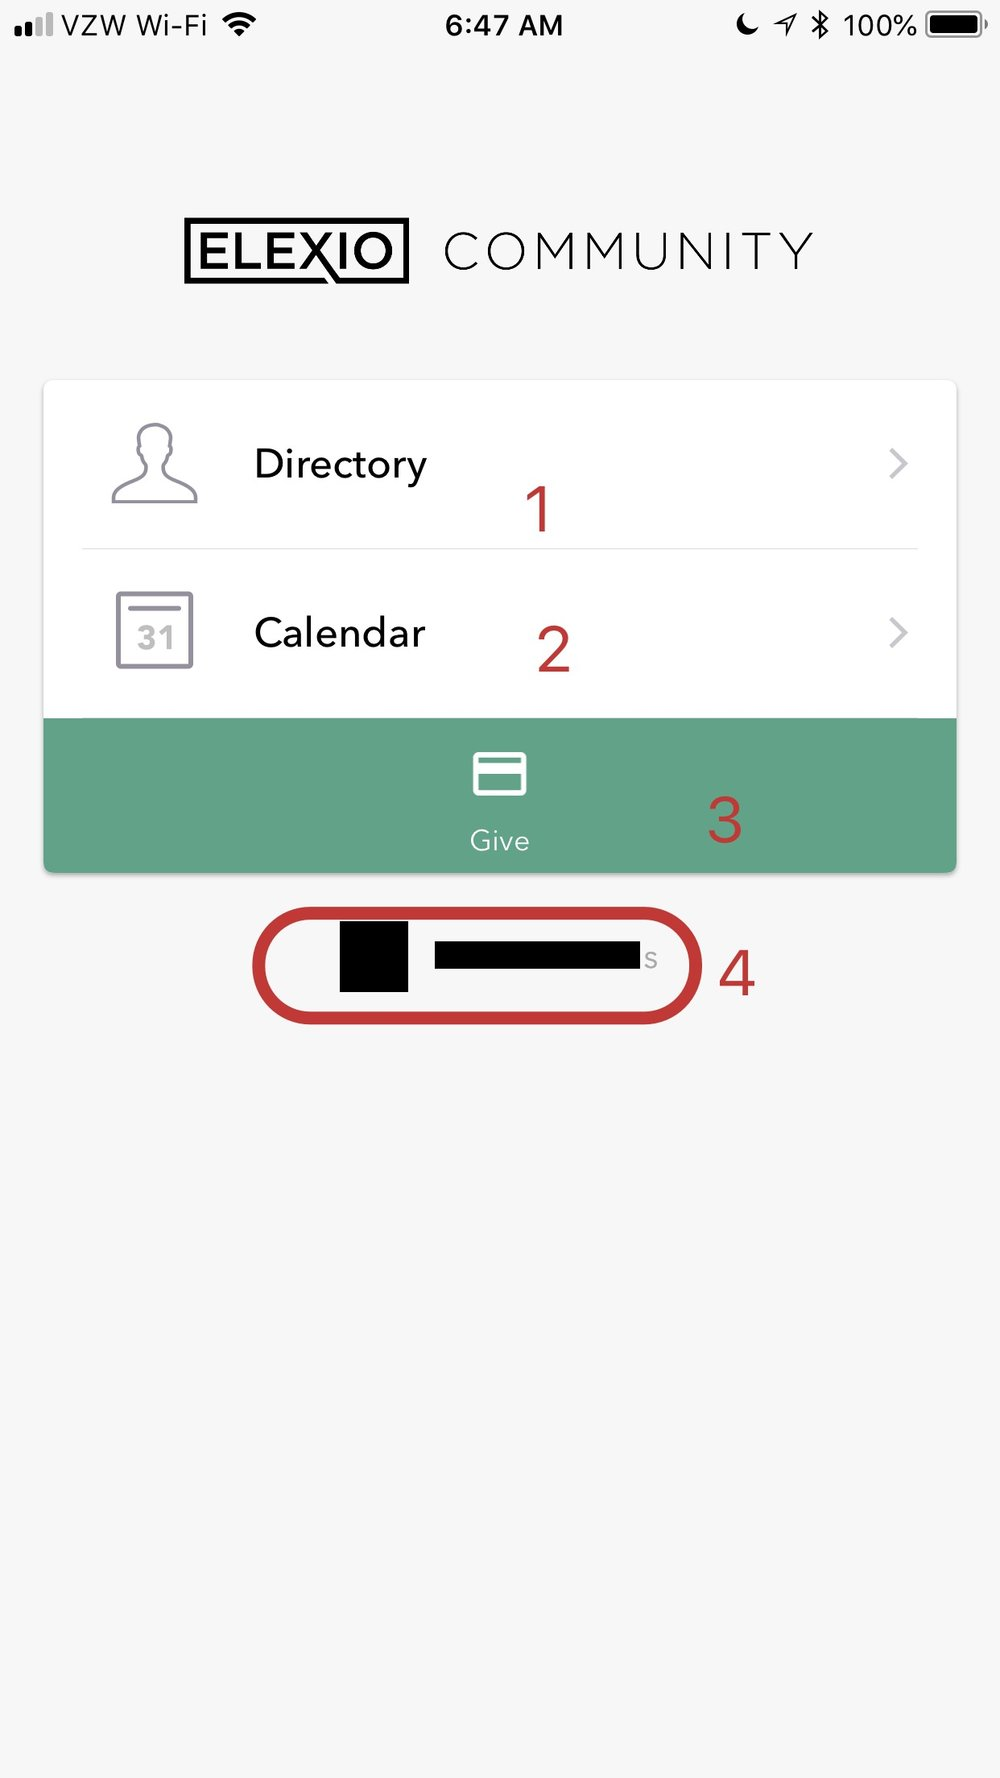 Top choices in the Elexio Community App - 1. Directory. Tap this to search for people at Holy Trinity.2. Calendar. Tap this to view the Holy Trinity Calendars3. Give. Tap this green bar to go to screen where you can arrange a donation to Holy Trinity4. Account Information. In place of the blanked out picture and text, you'll see on your smartphone your Holy Trinity picture and your name. Tap on this name and picture to go to your account page